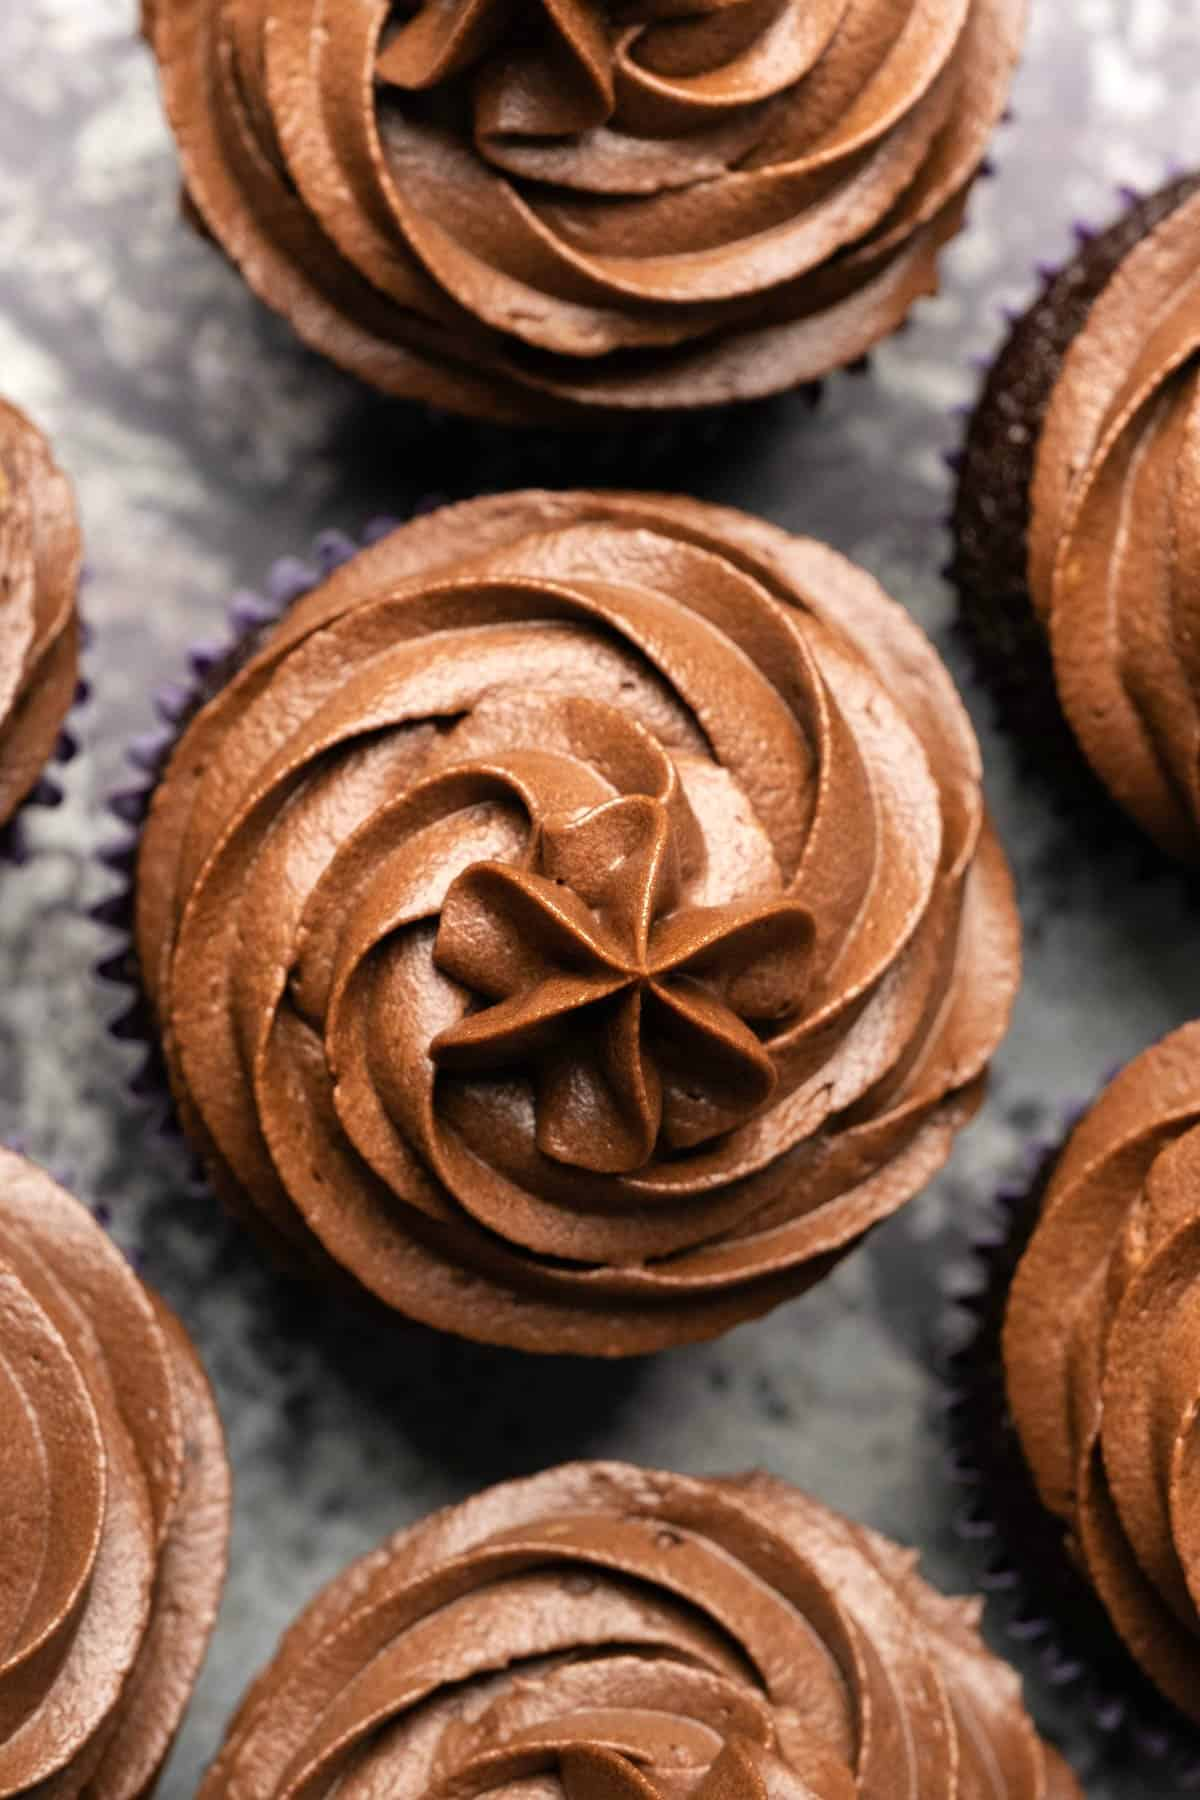 Cupcakes with chocolate buttercream frosting piped on top.